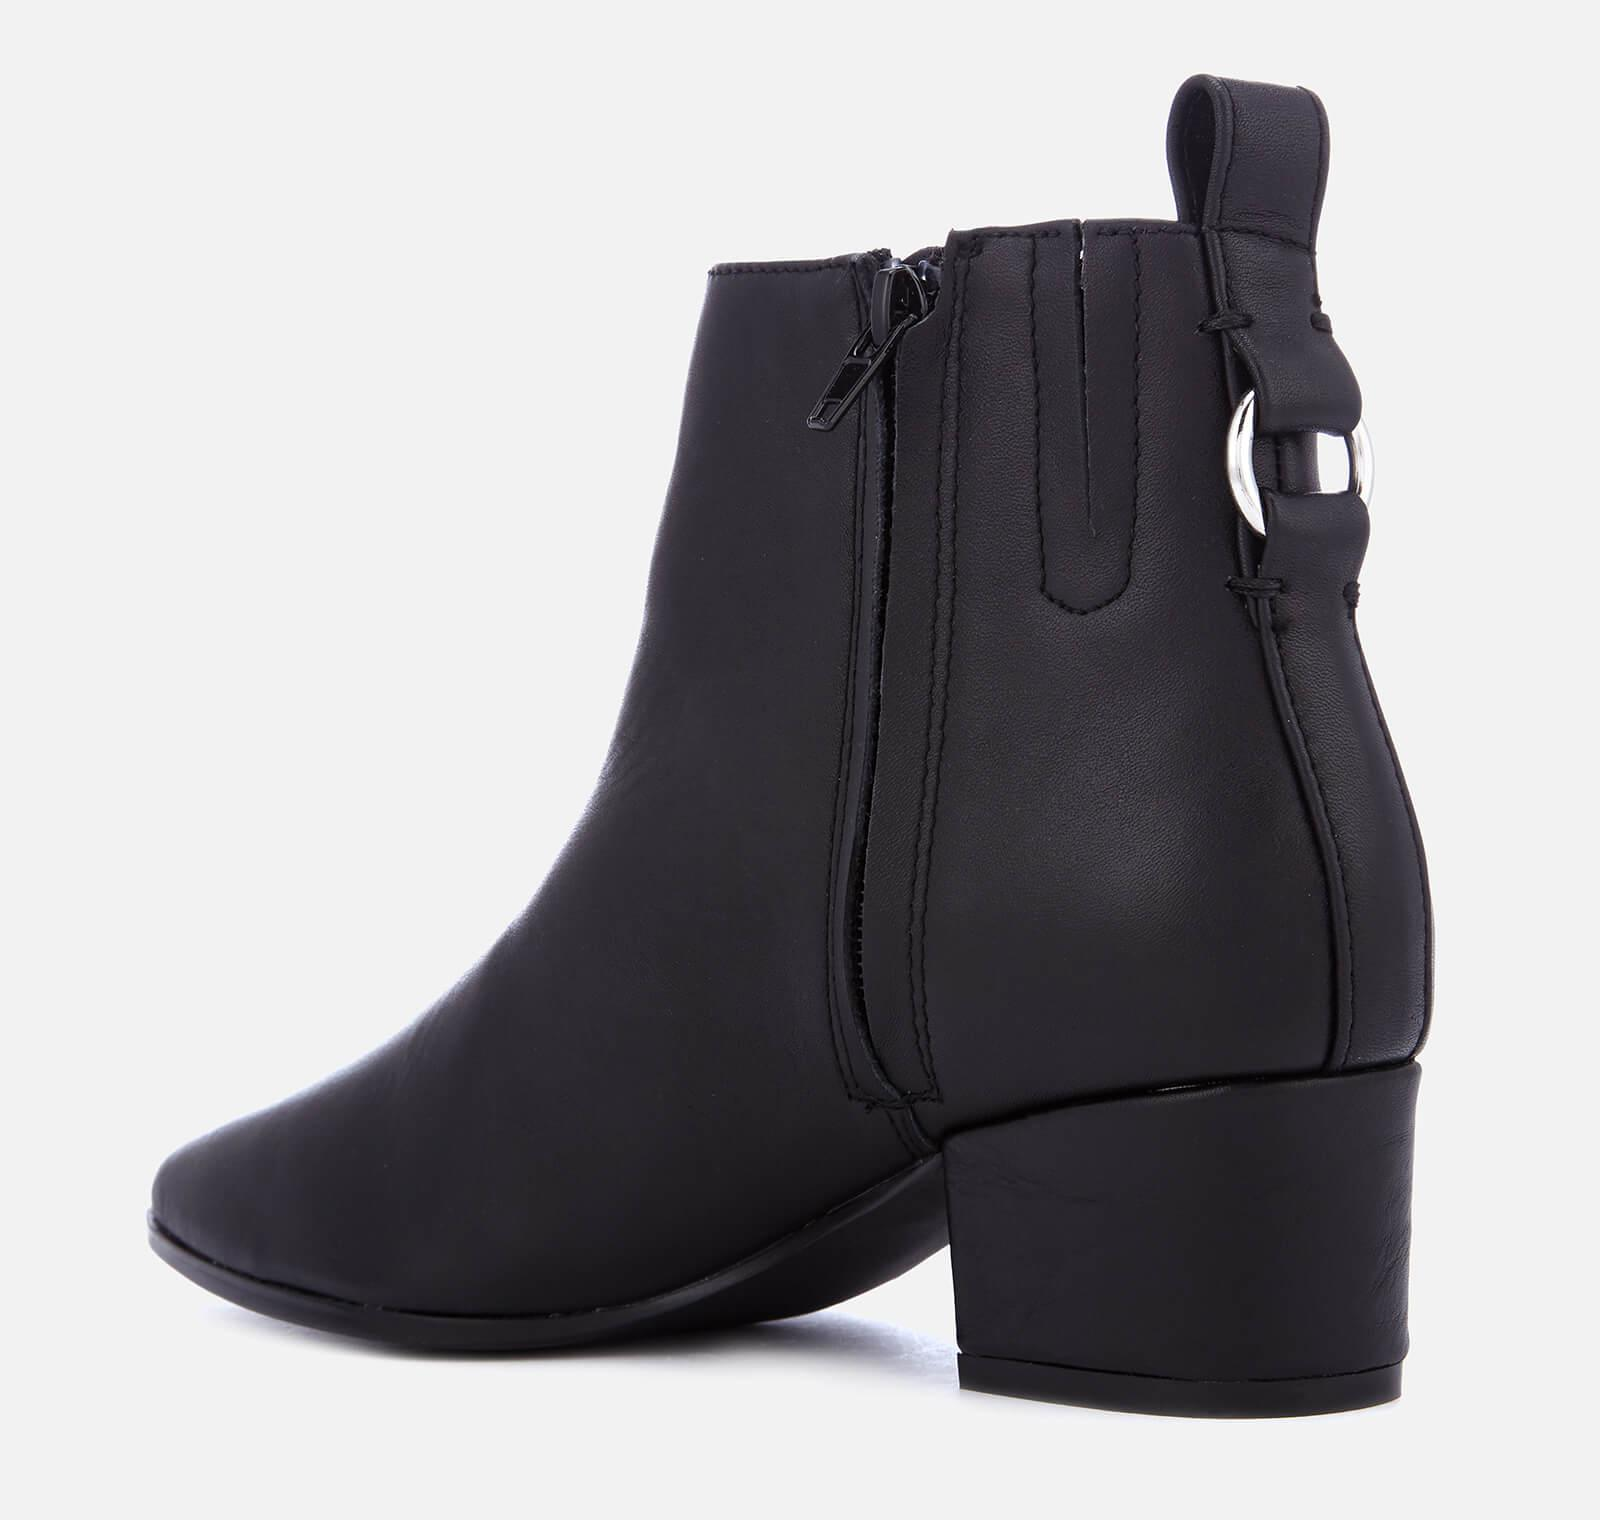 c90ca197f93 Steve Madden - Black Clover Leather Heeled Ankle Boots - Lyst. View  fullscreen